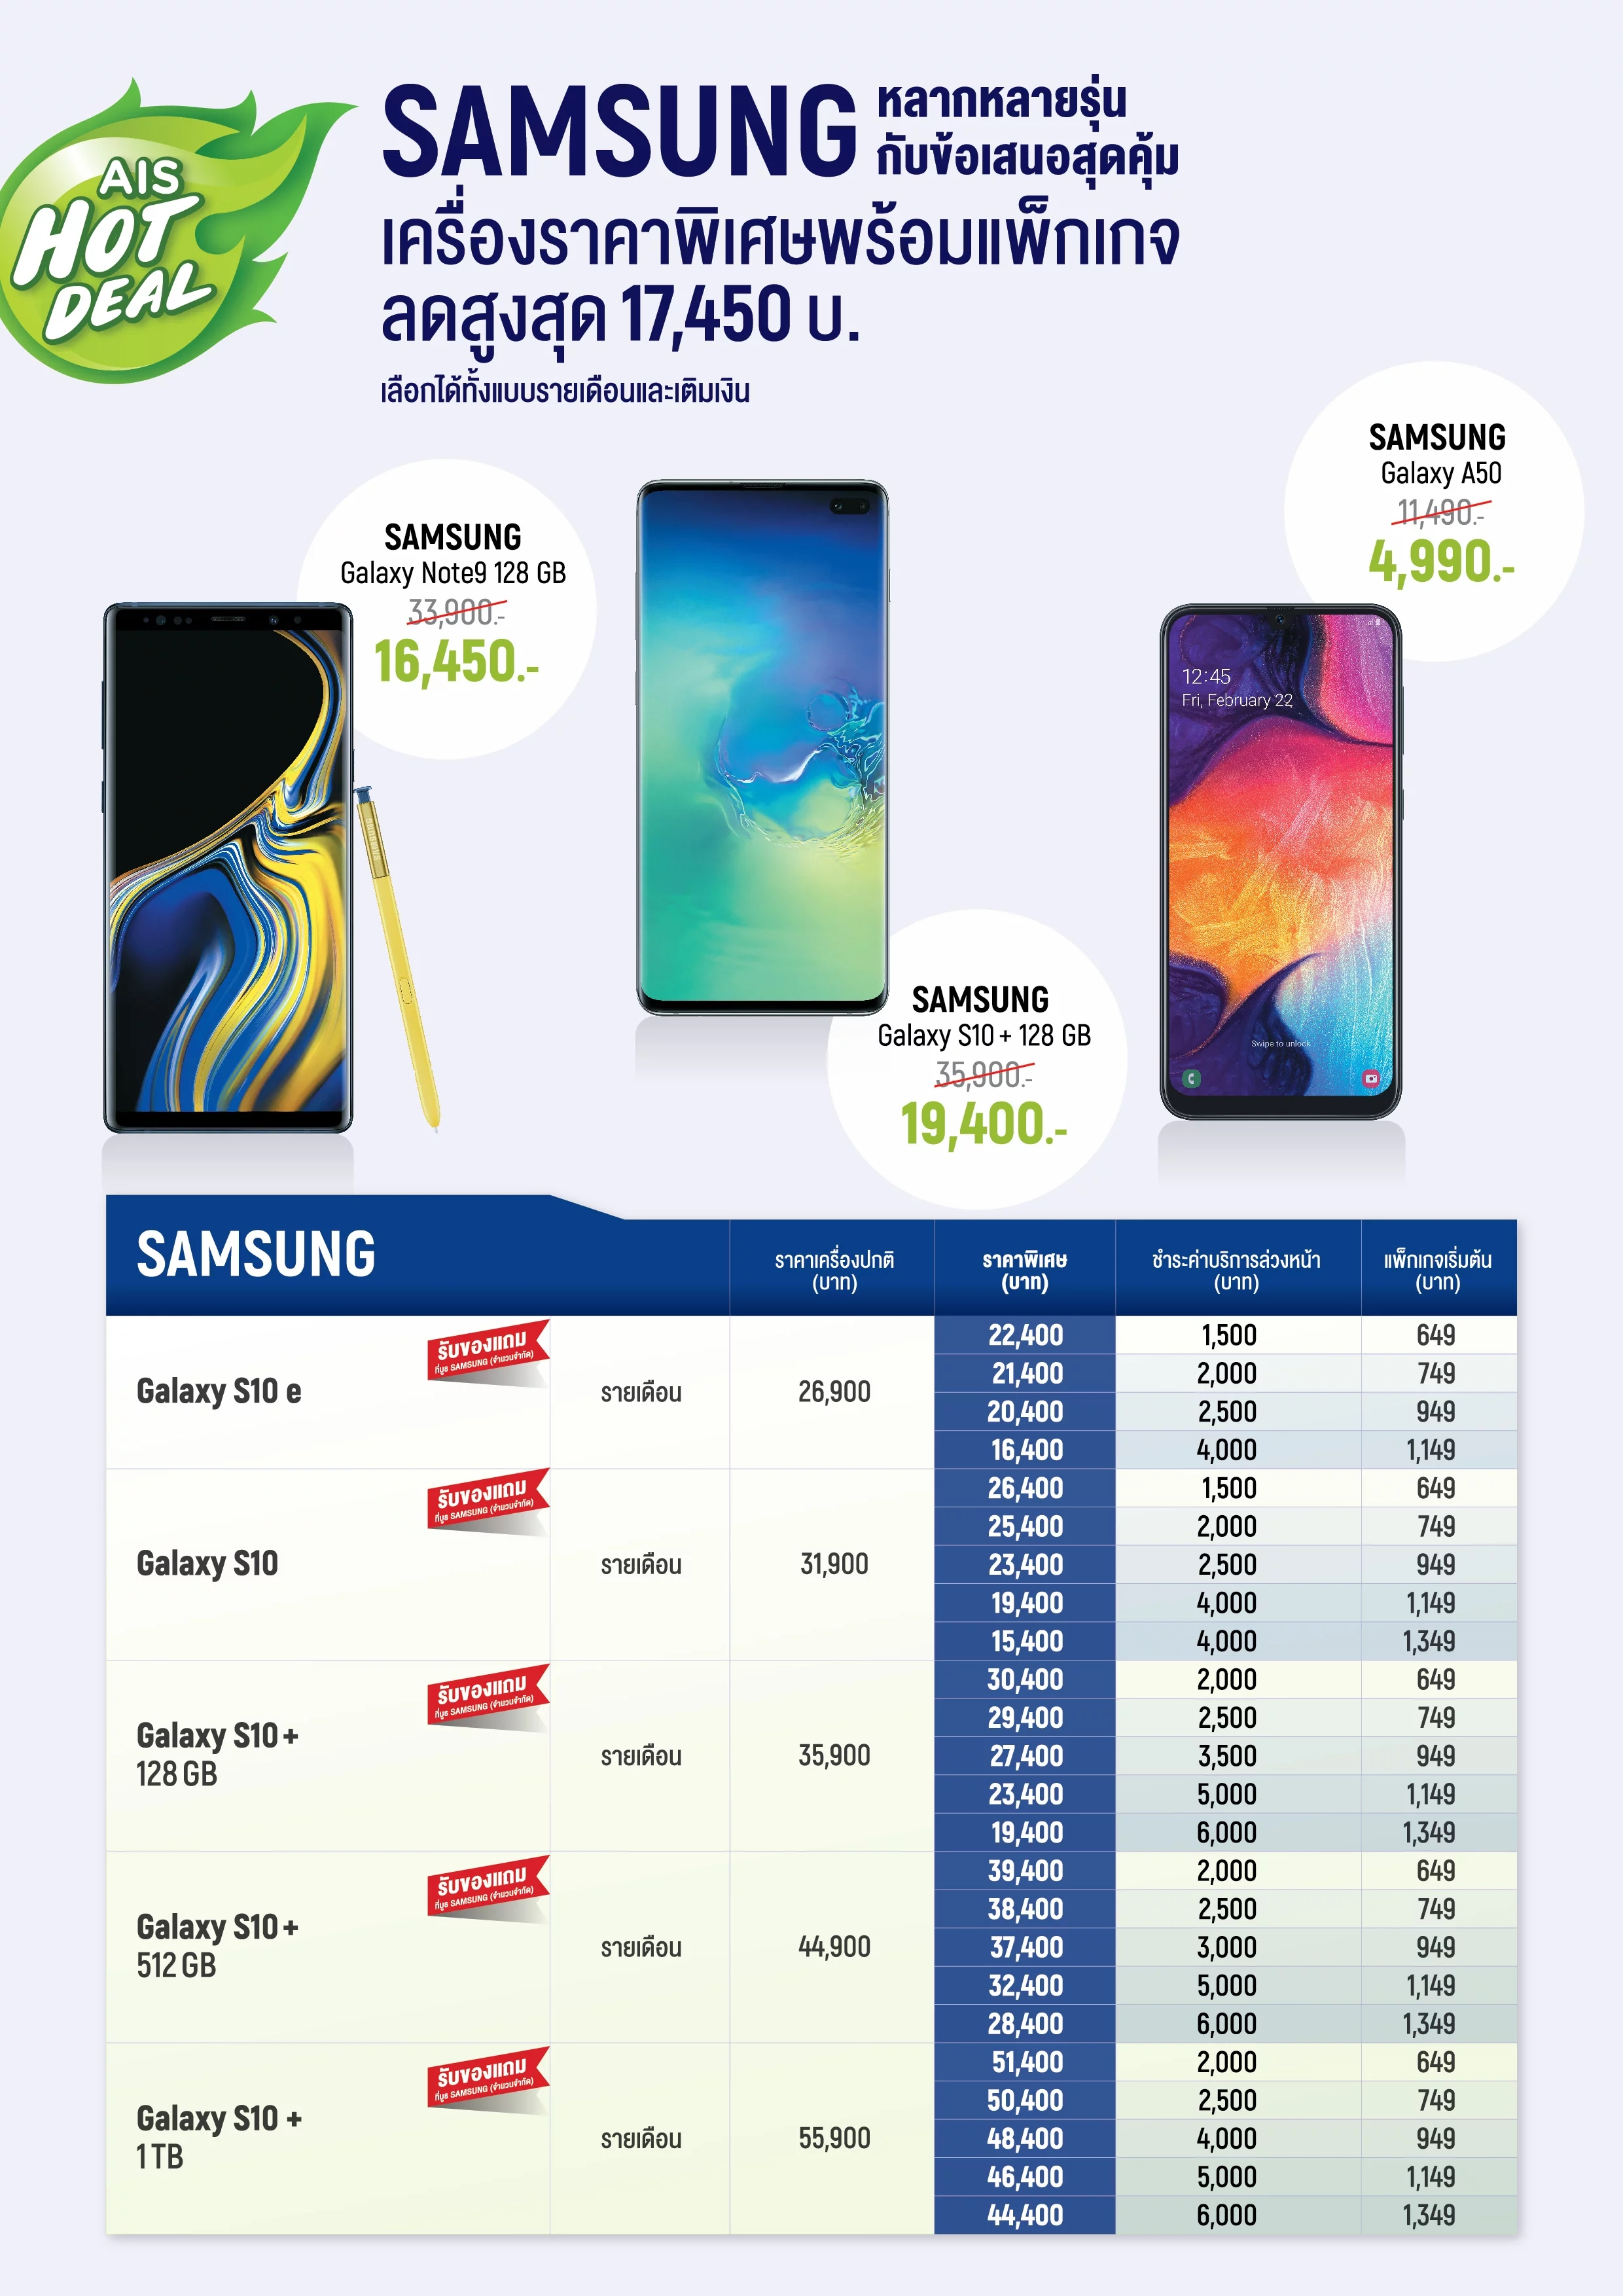 AIS Hot Deal Smartphone at Mid TME 2019 – 1